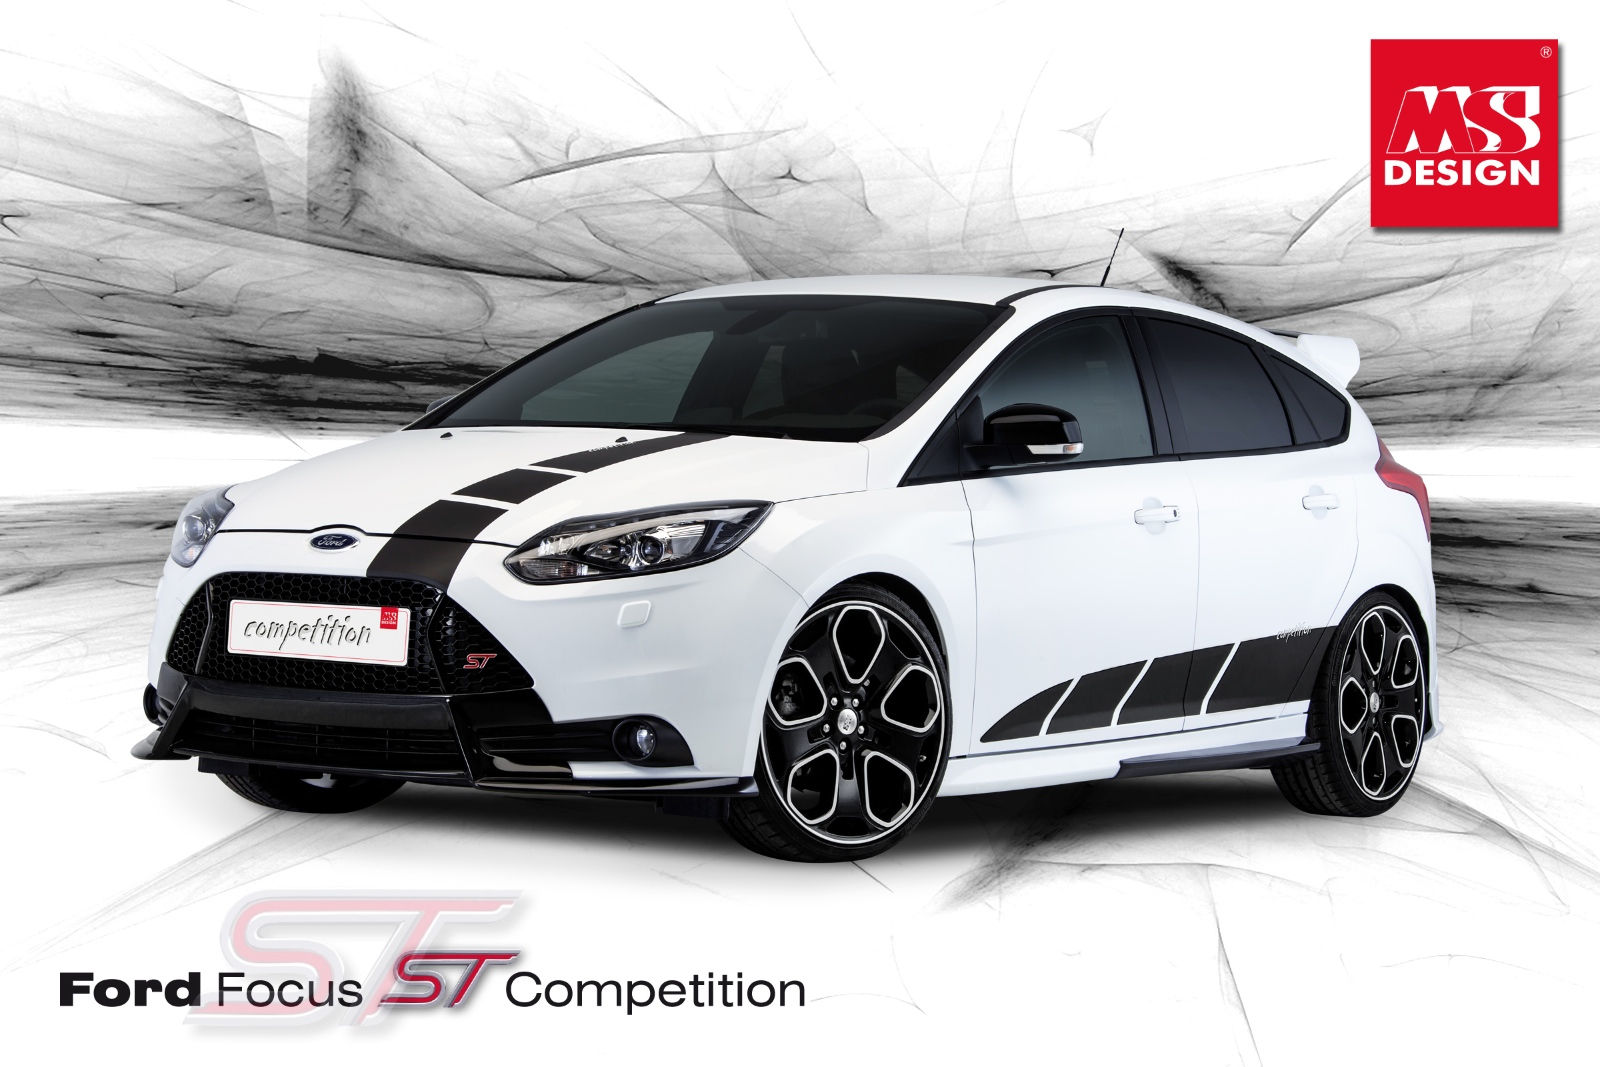 2013 Ford Focus ST Competition by MS Design Looks Hot - autoevolution